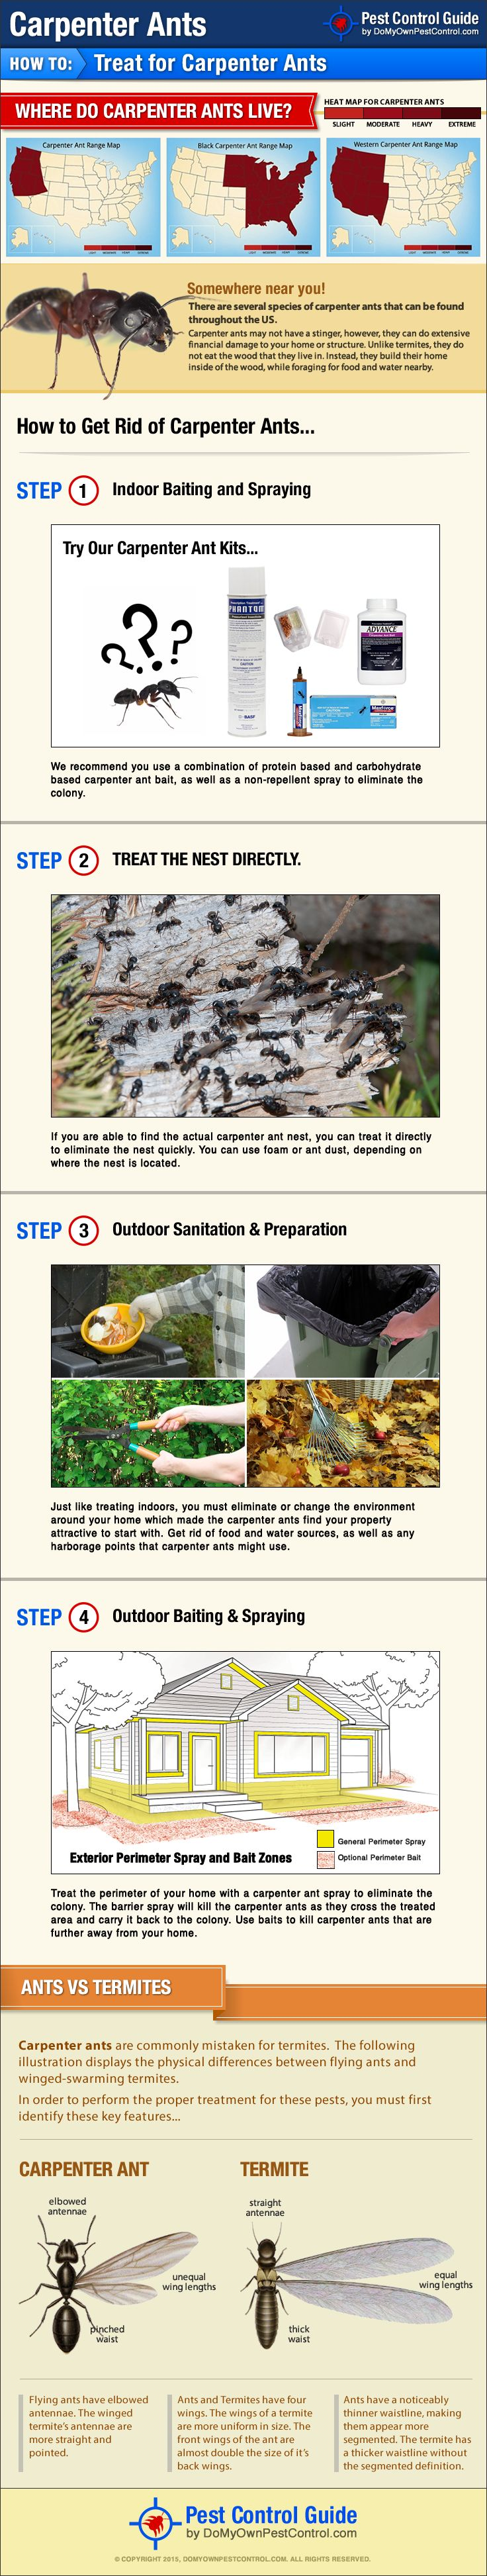 Learn how to get rid of carpenter ants with this new DIY carpenter ant treatment guide.